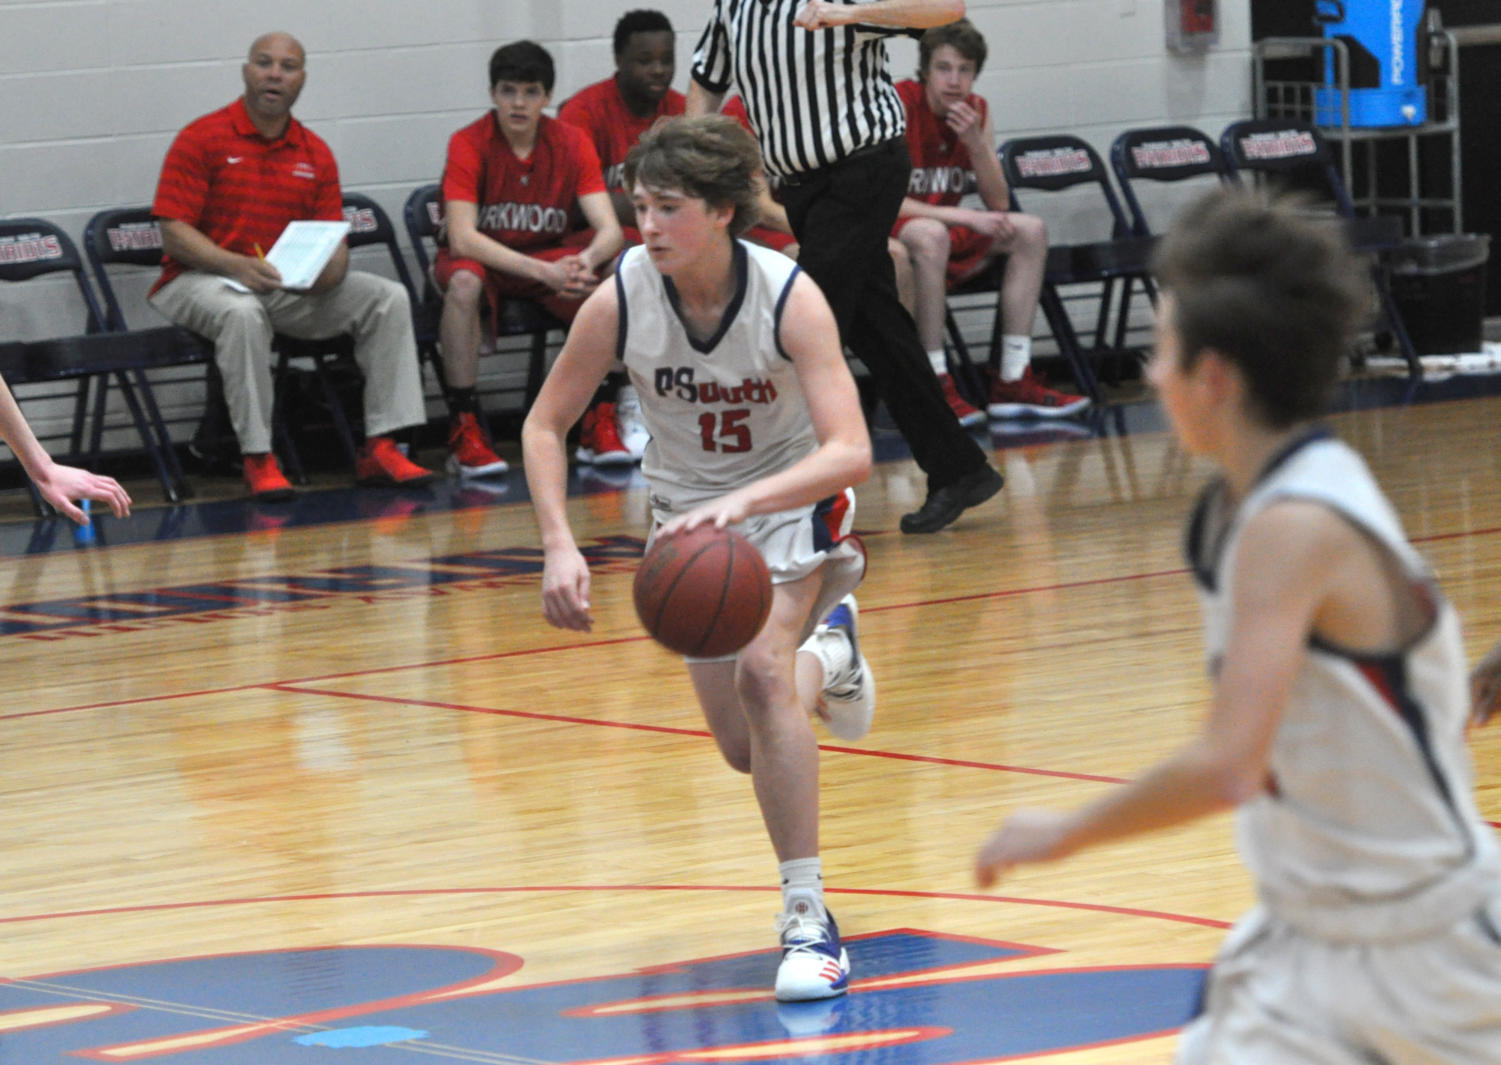 Freshman Owen Veltrop dribbles up the court during a recent freshman basketball game.